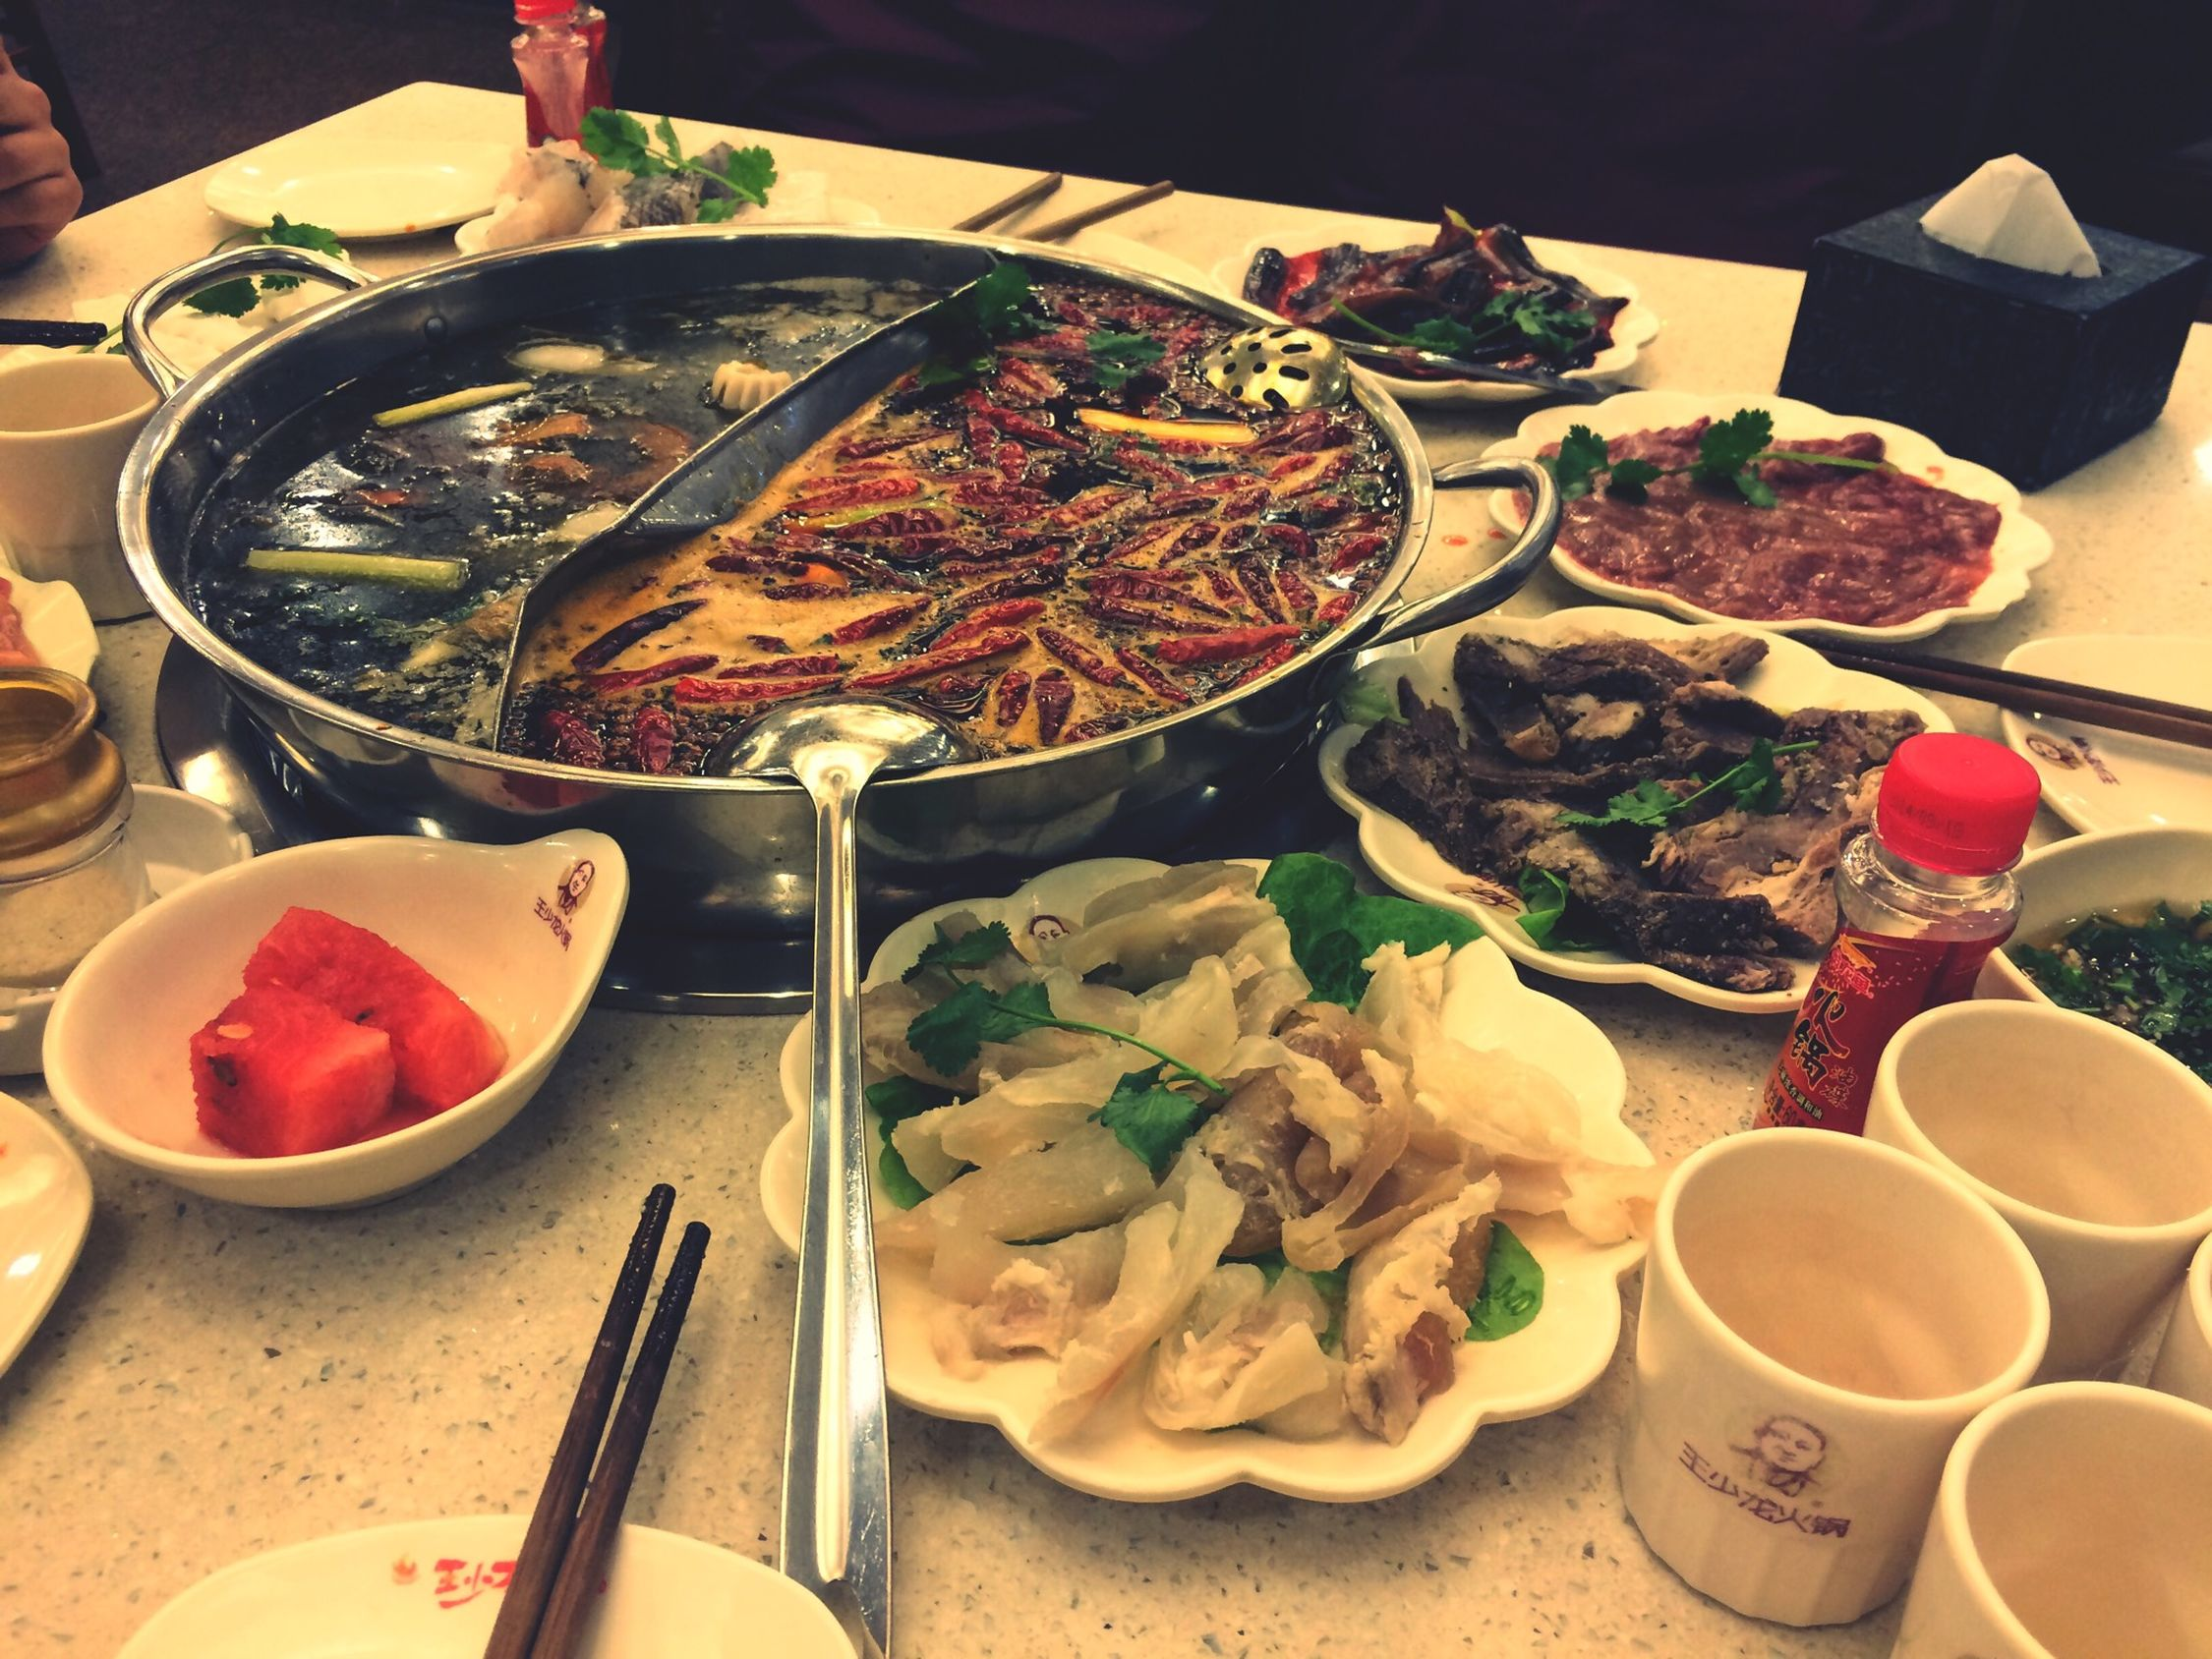 Chafing Dish Spicy Delicious Friends Weekend